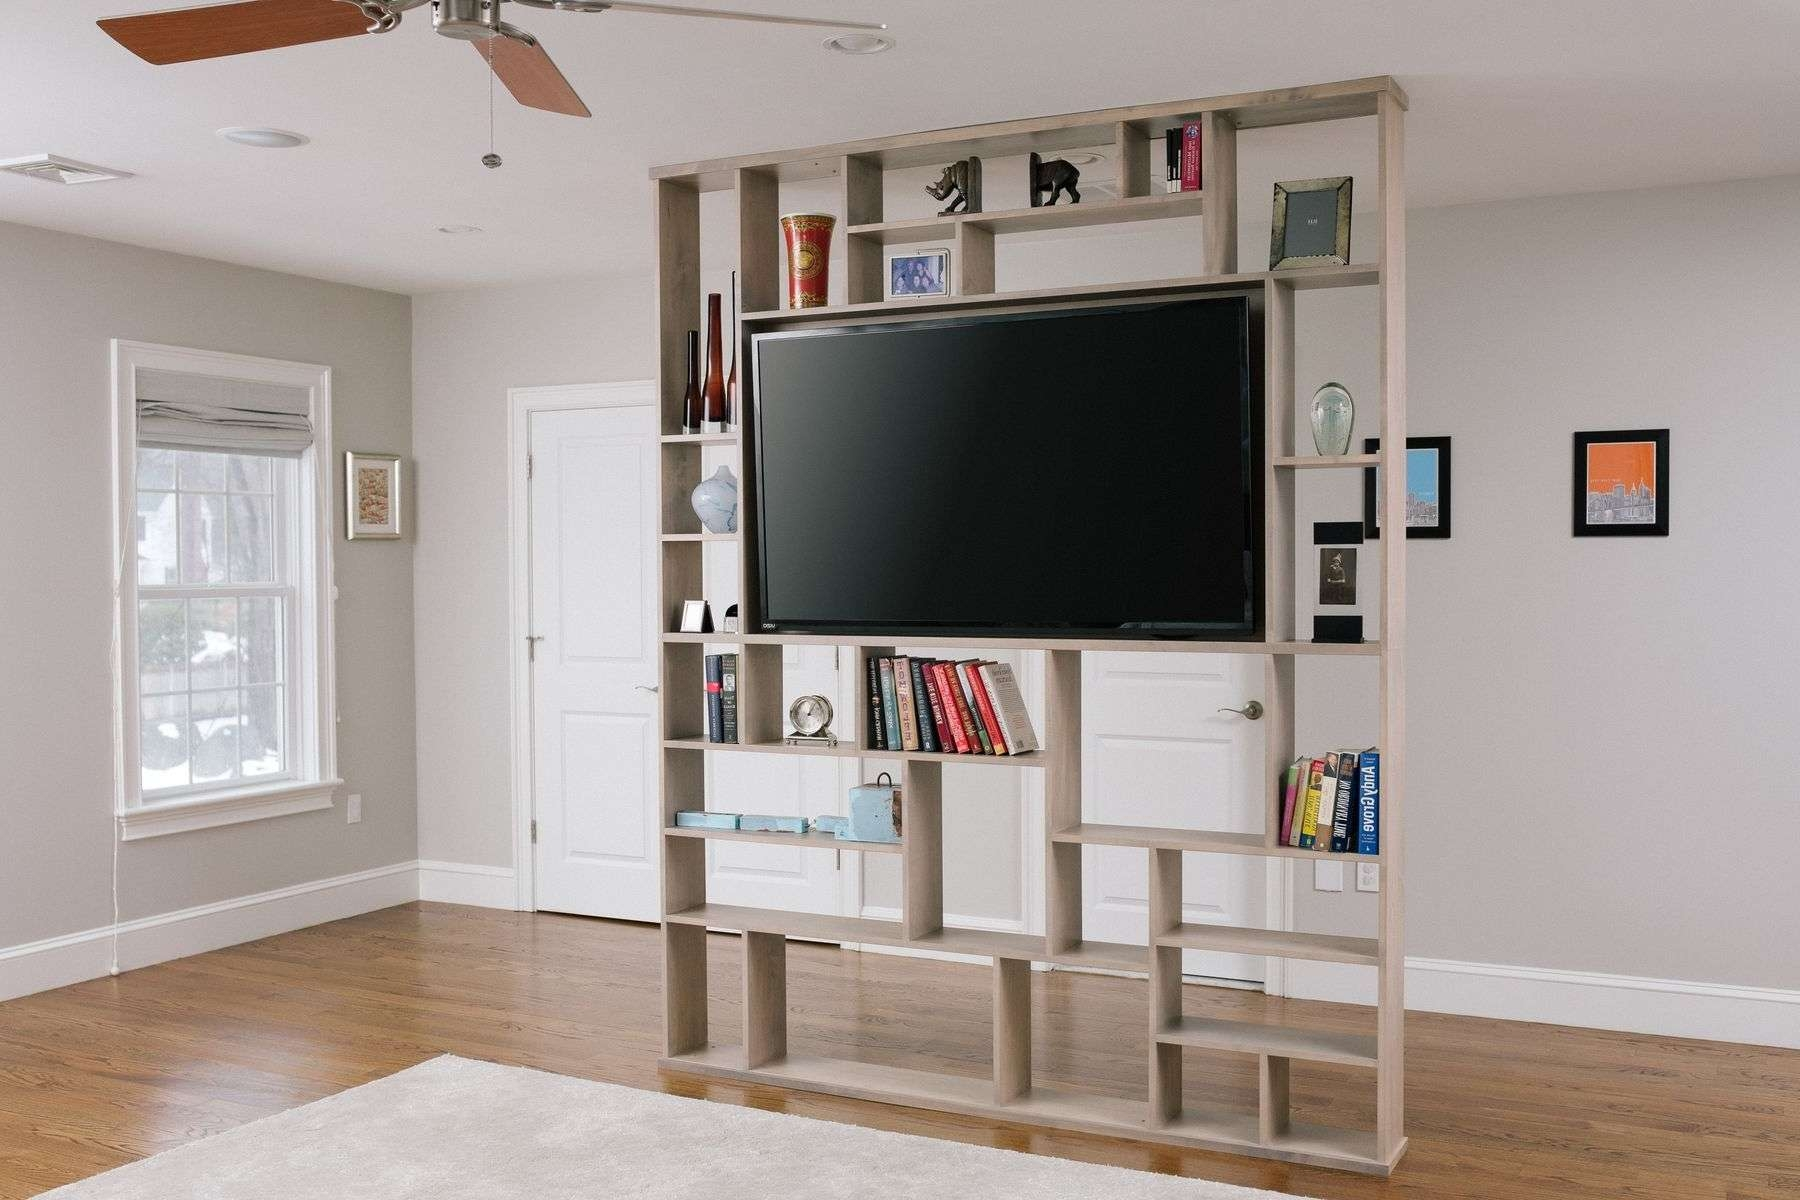 Hand Crafted Lexington Room Divider / Bookshelf / Tv Standcorl For Tv Stands And Bookshelf (View 7 of 15)